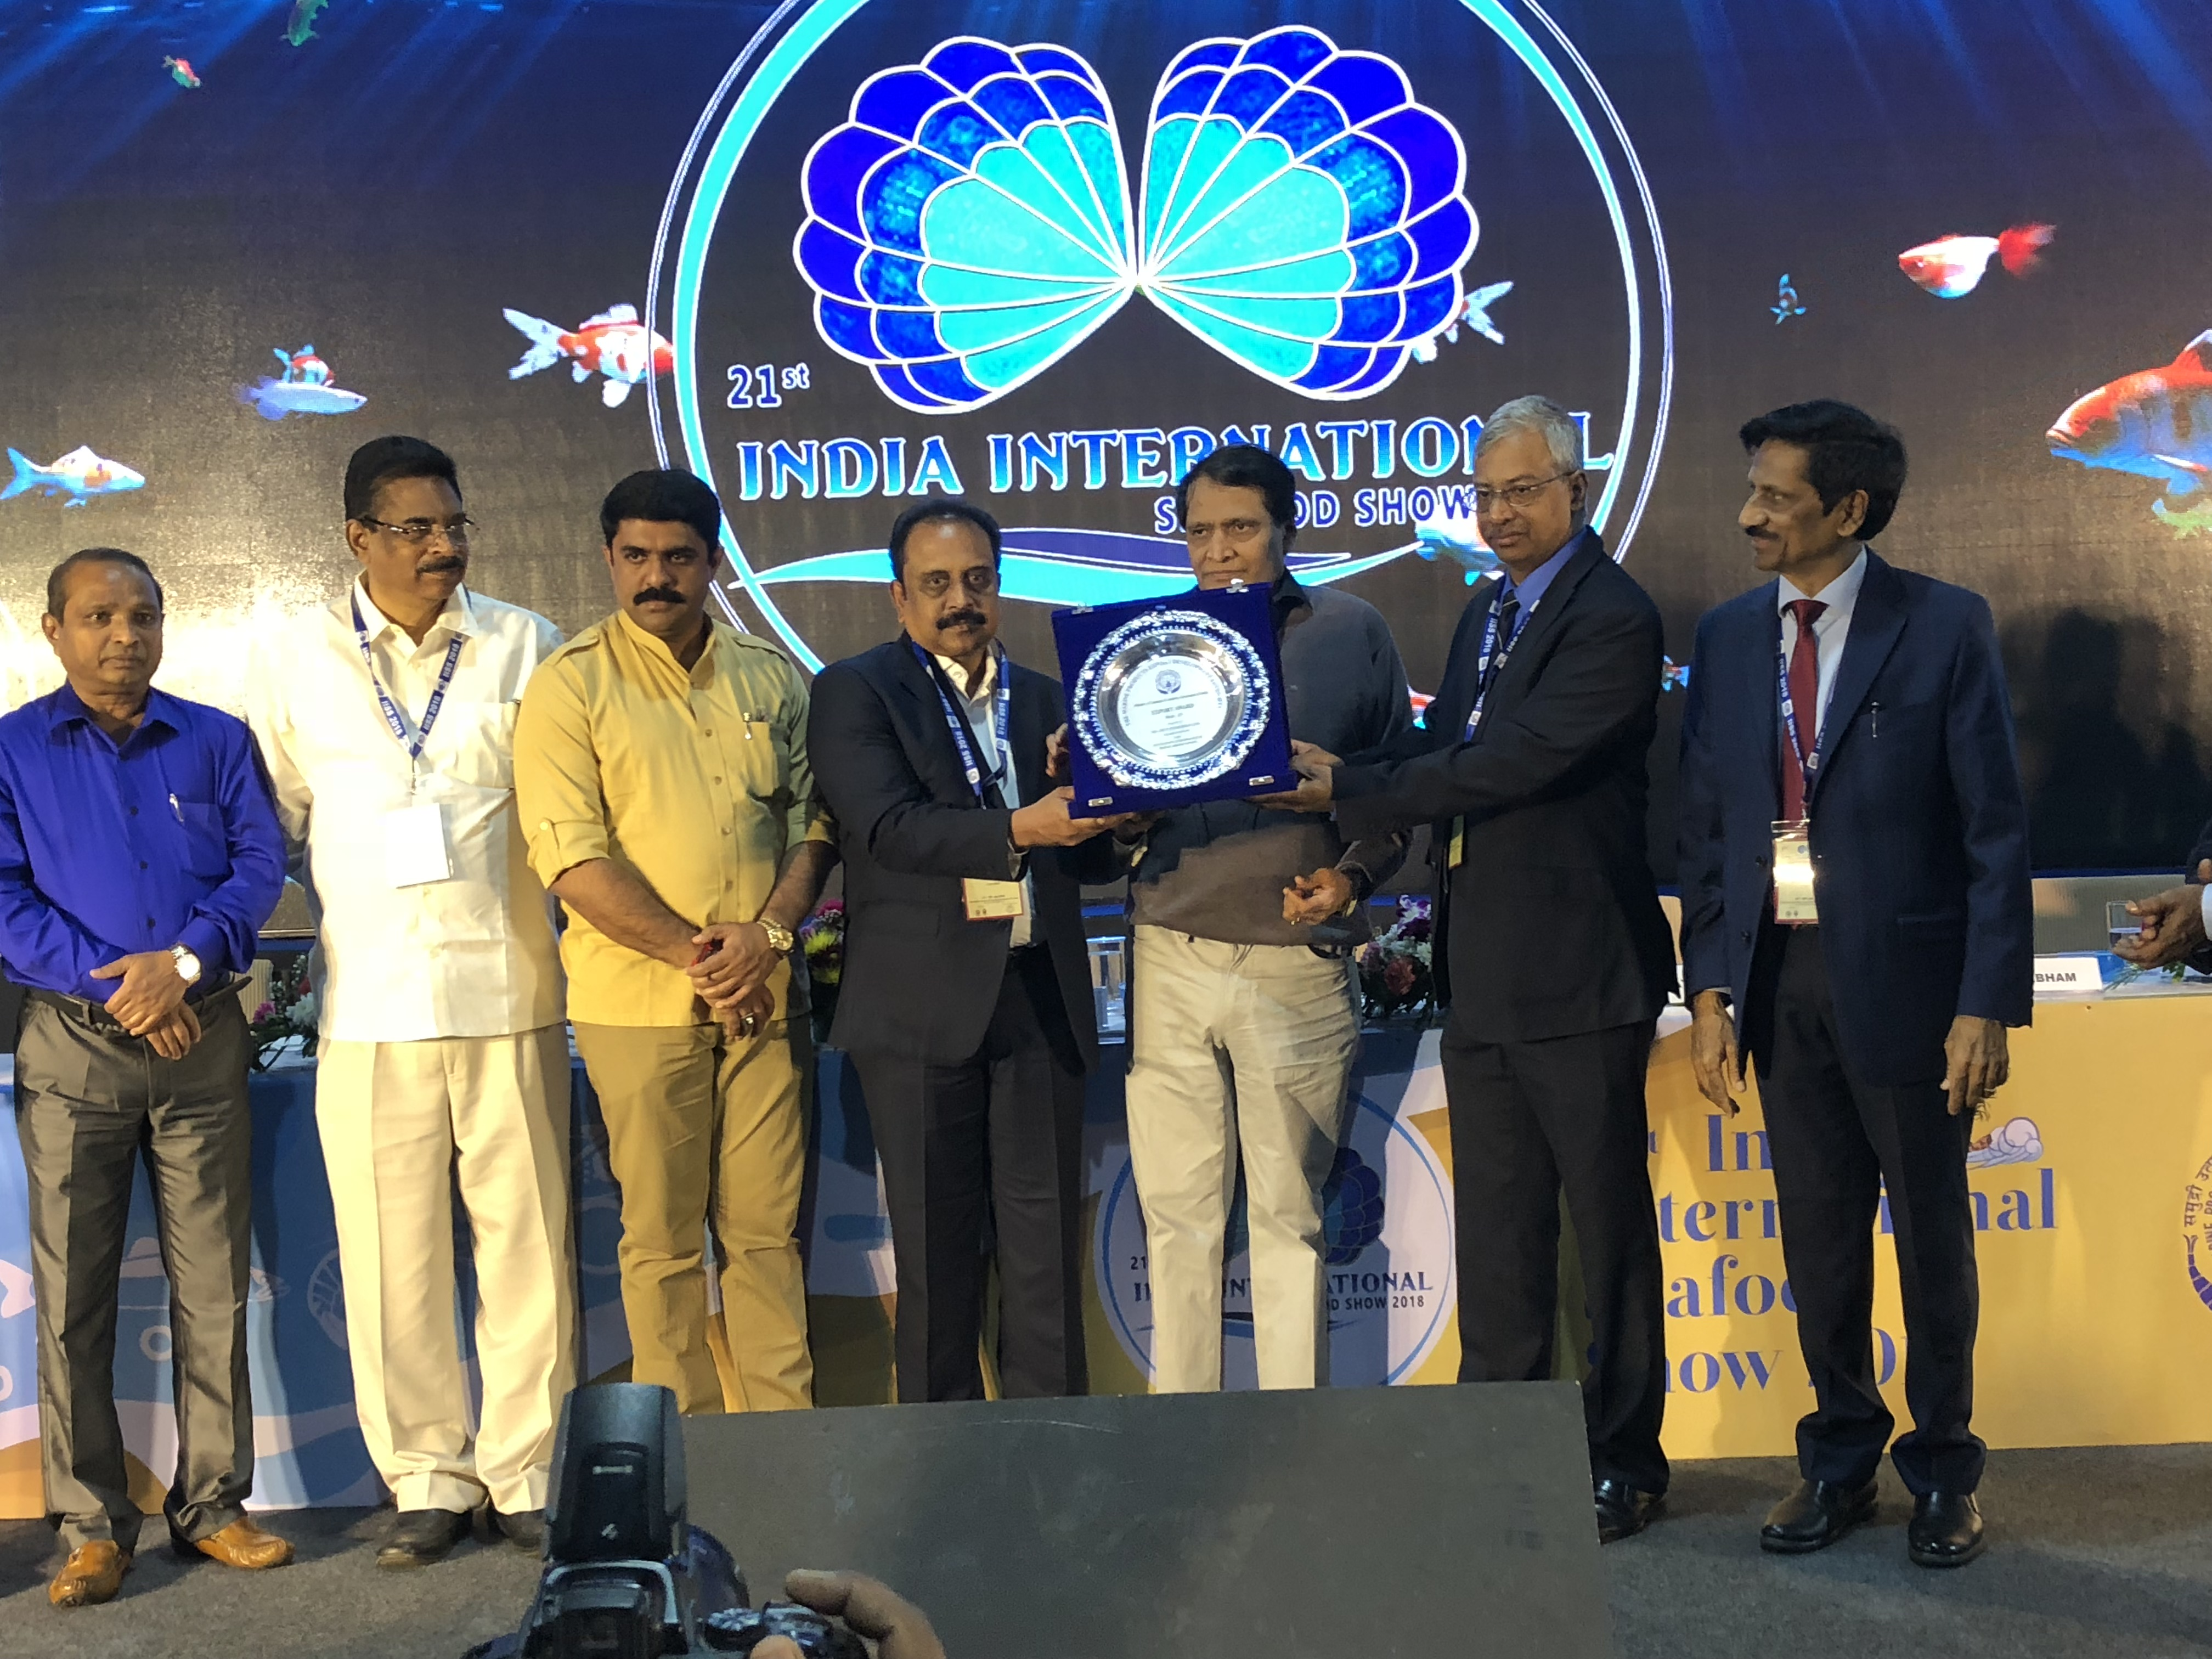 Devi Fisheries Gets Recognized as Indias Largest Seafood Exporter